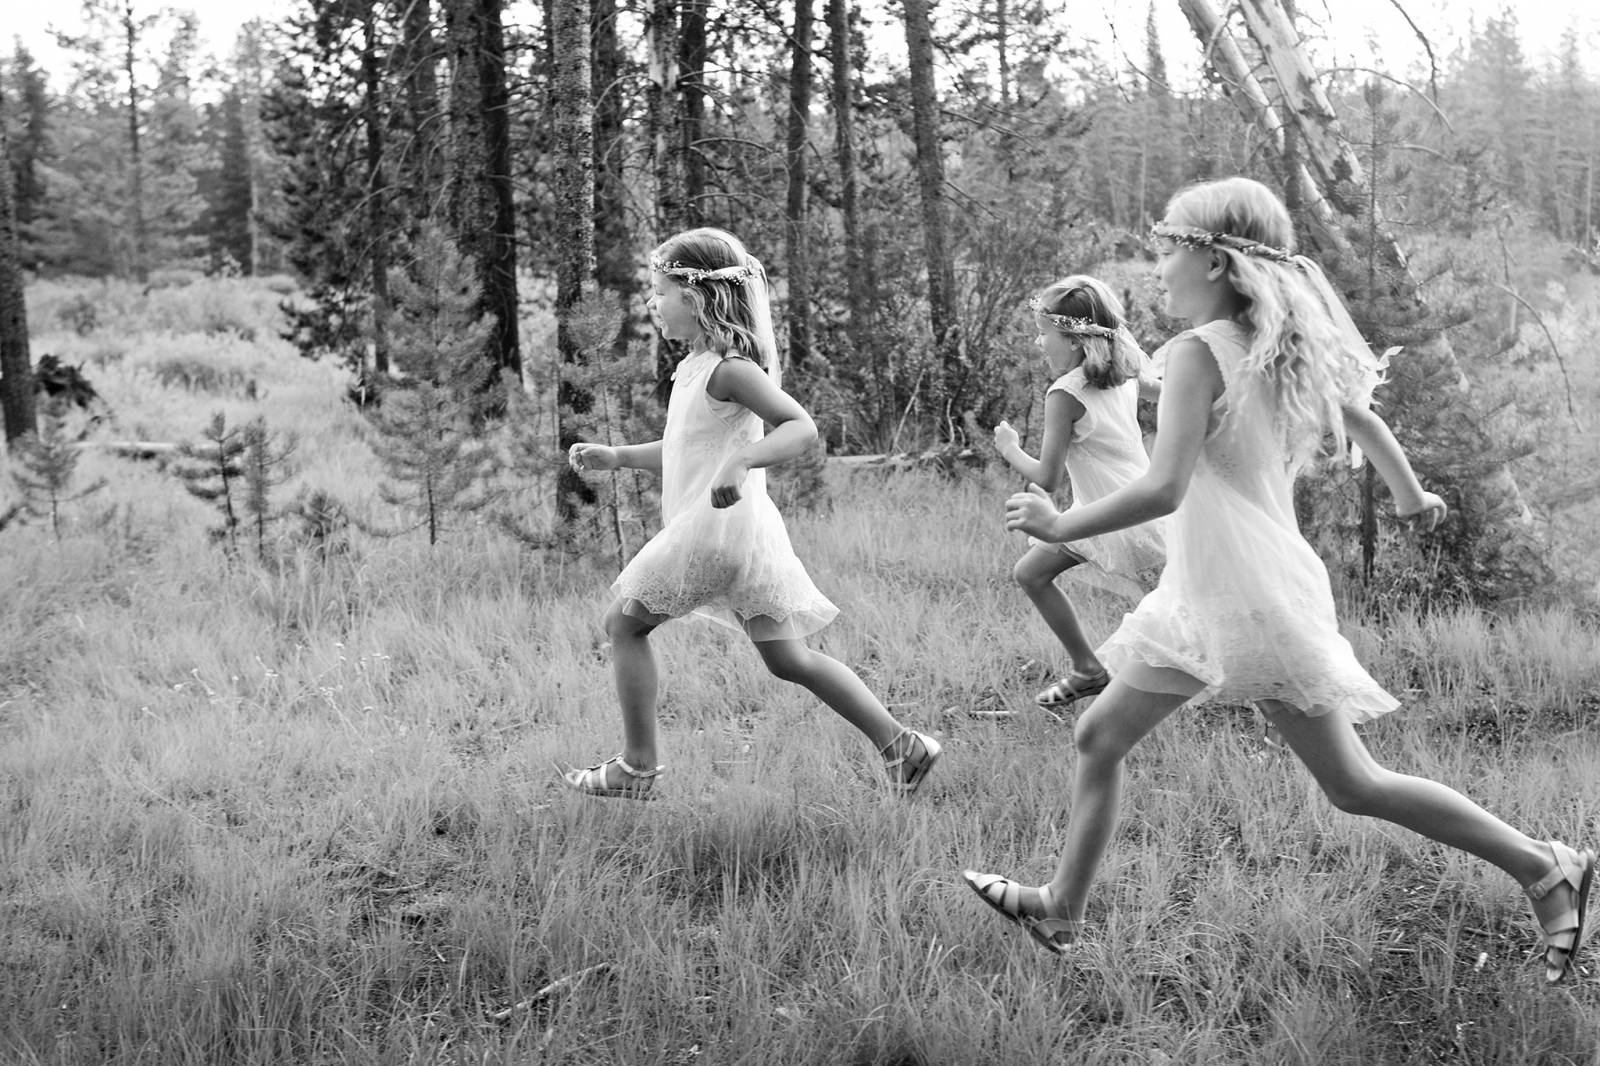 Tana Photography captures flower girls from wedding running through the forest